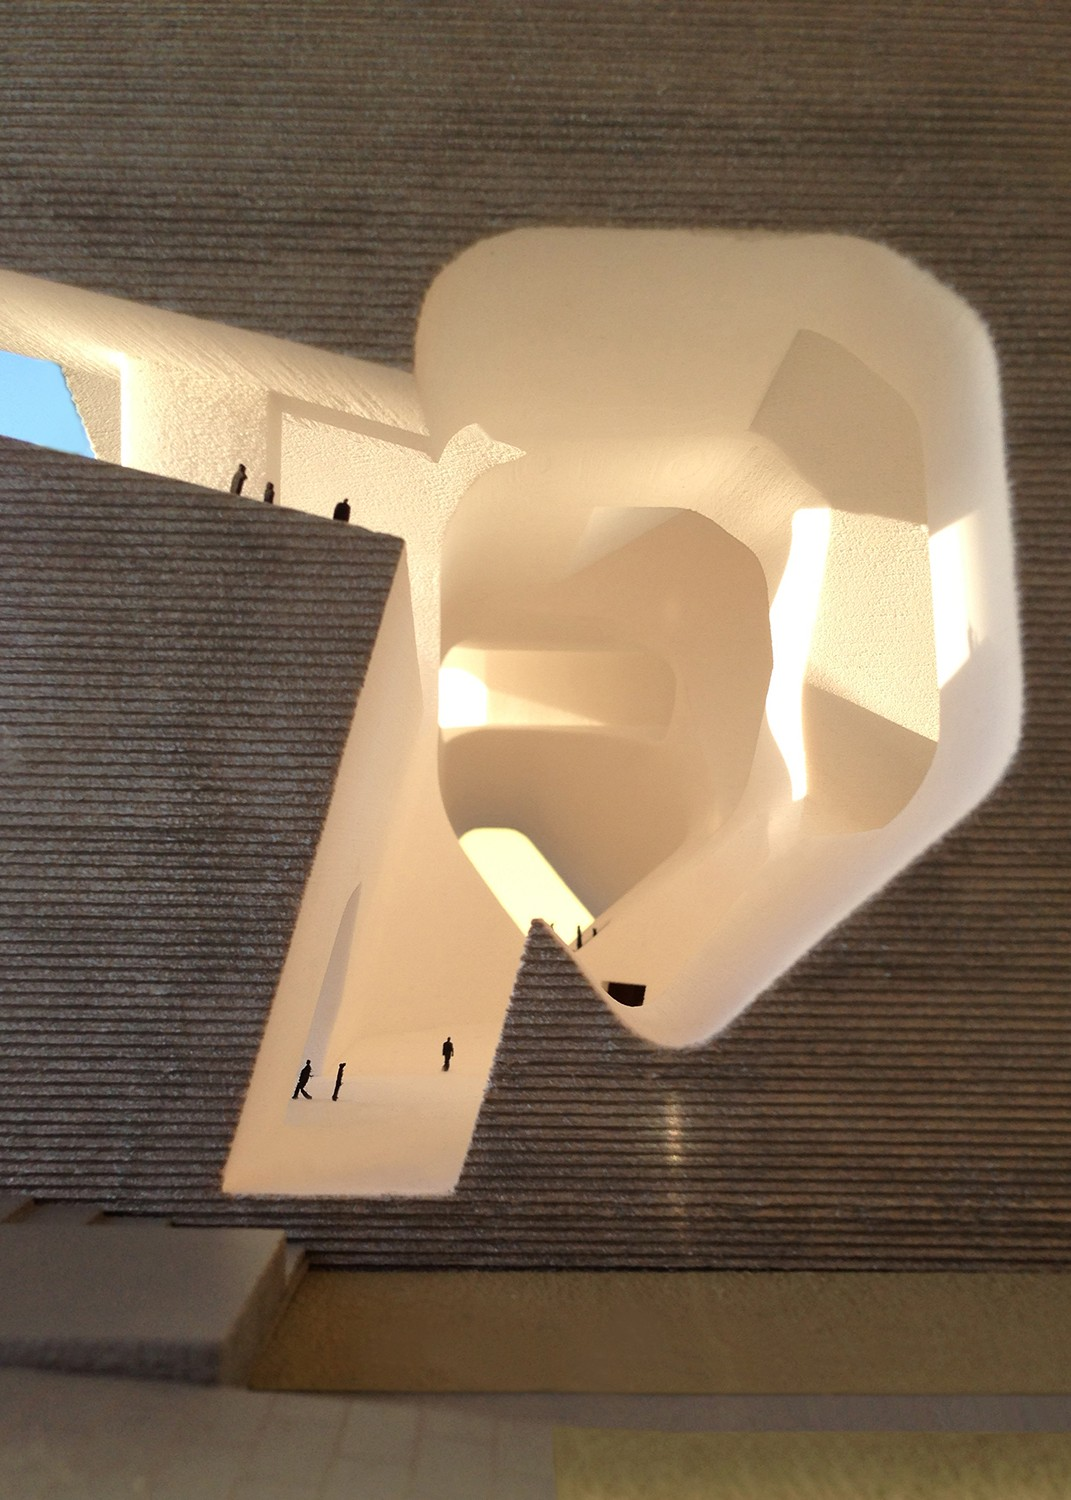 https://s3.us-east-2.amazonaws.com/steven-holl/uploads/projects/project-images/StevenHollArchitects_Tianjin_IMG_0598 SQ_WV.jpg